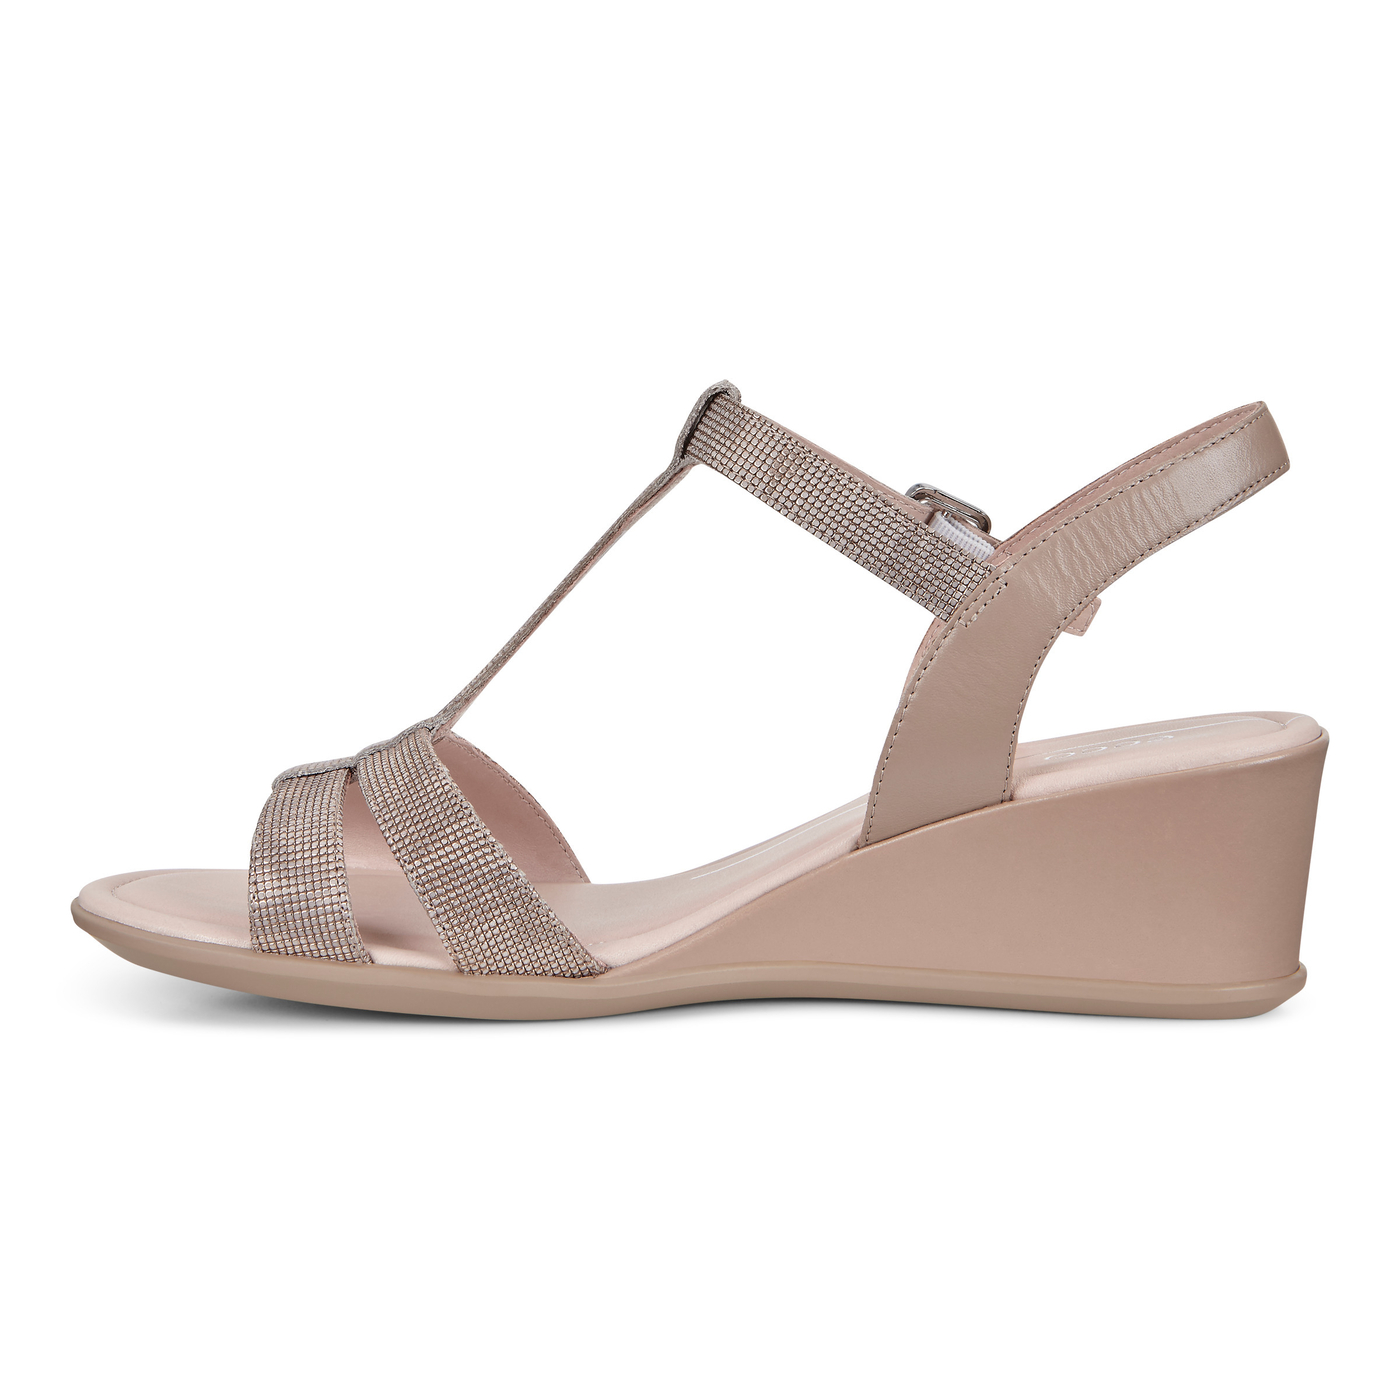 ECCO SHAPE 35 WEDGE SANDAL Hee